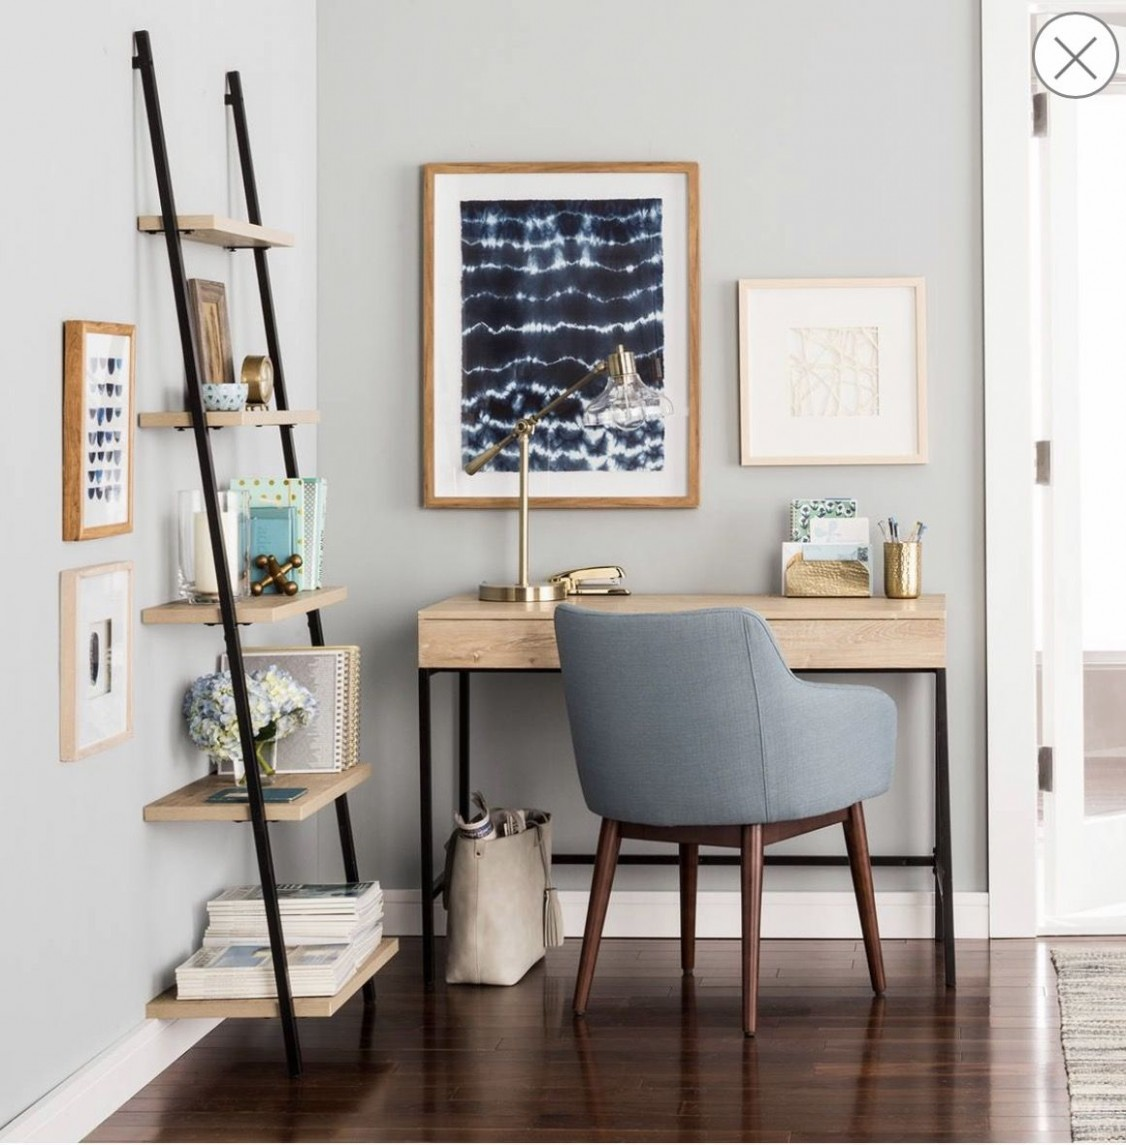 Target Home Office  Home office decor, Home decor, Interior - Home Office Ideas Target